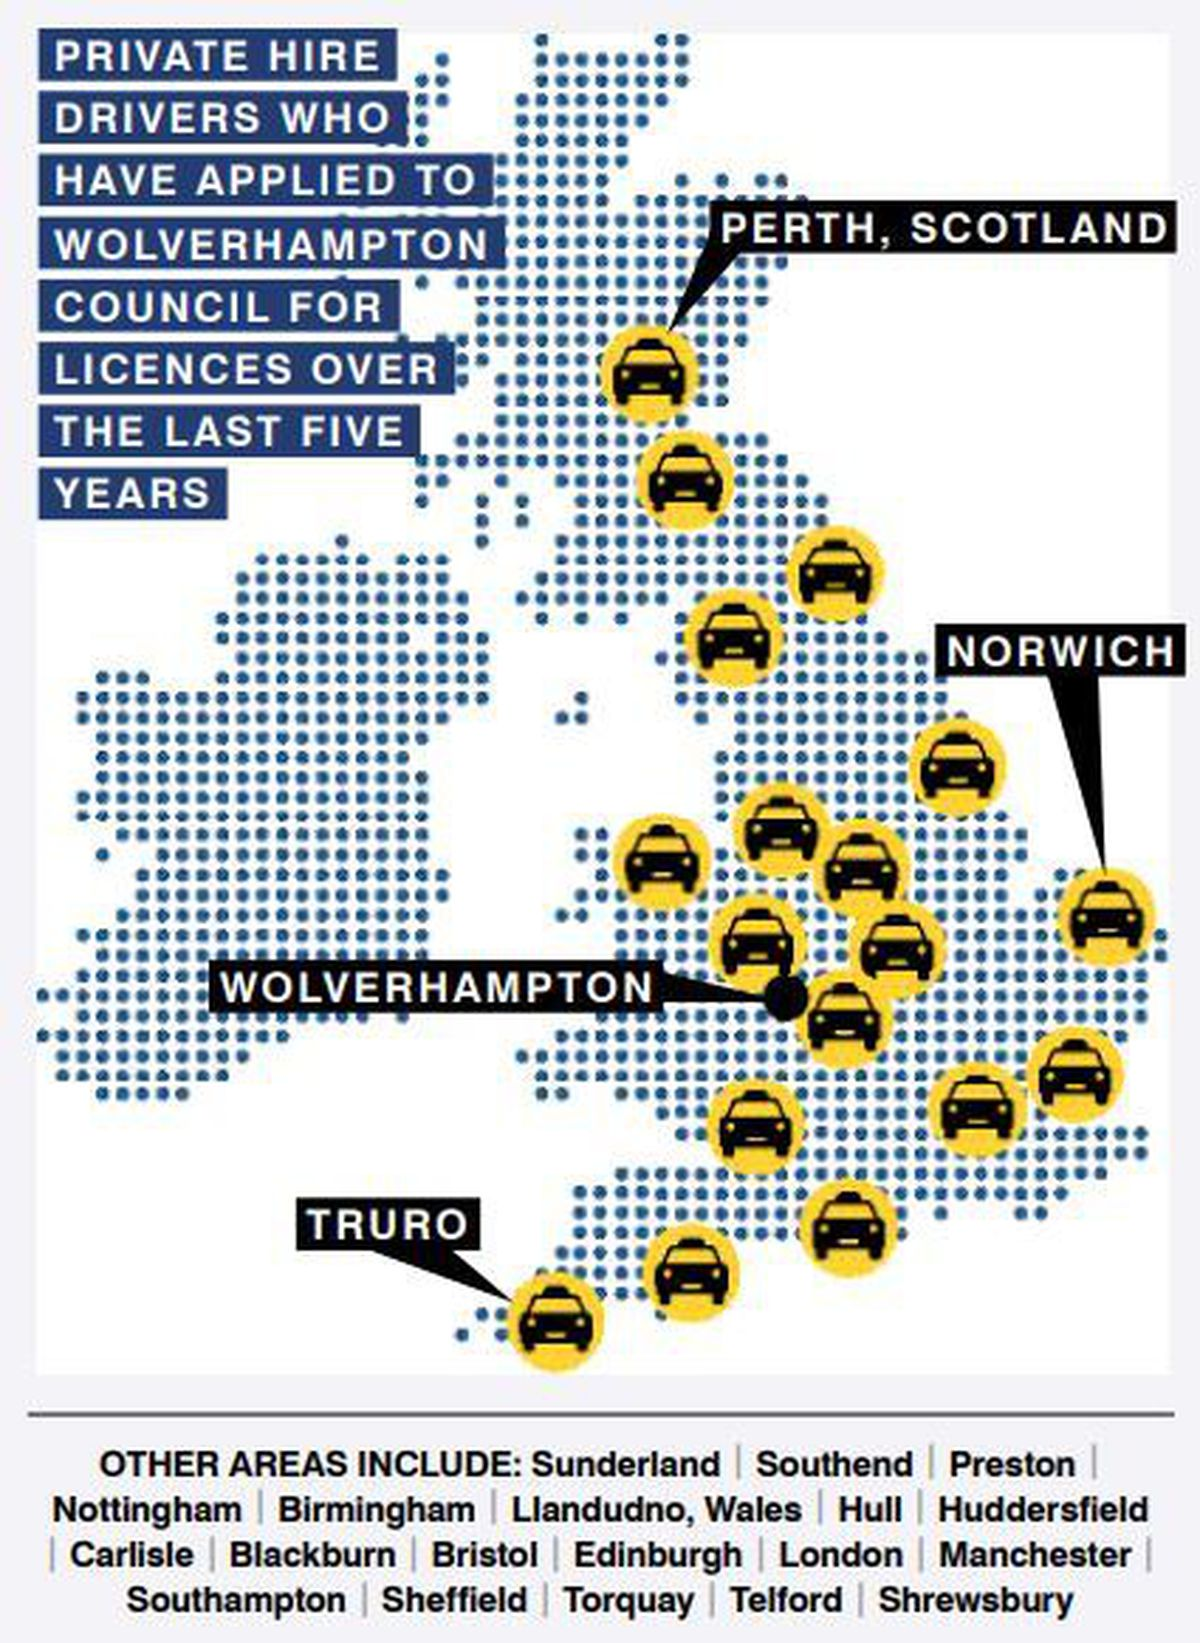 Where the taxi drivers were from